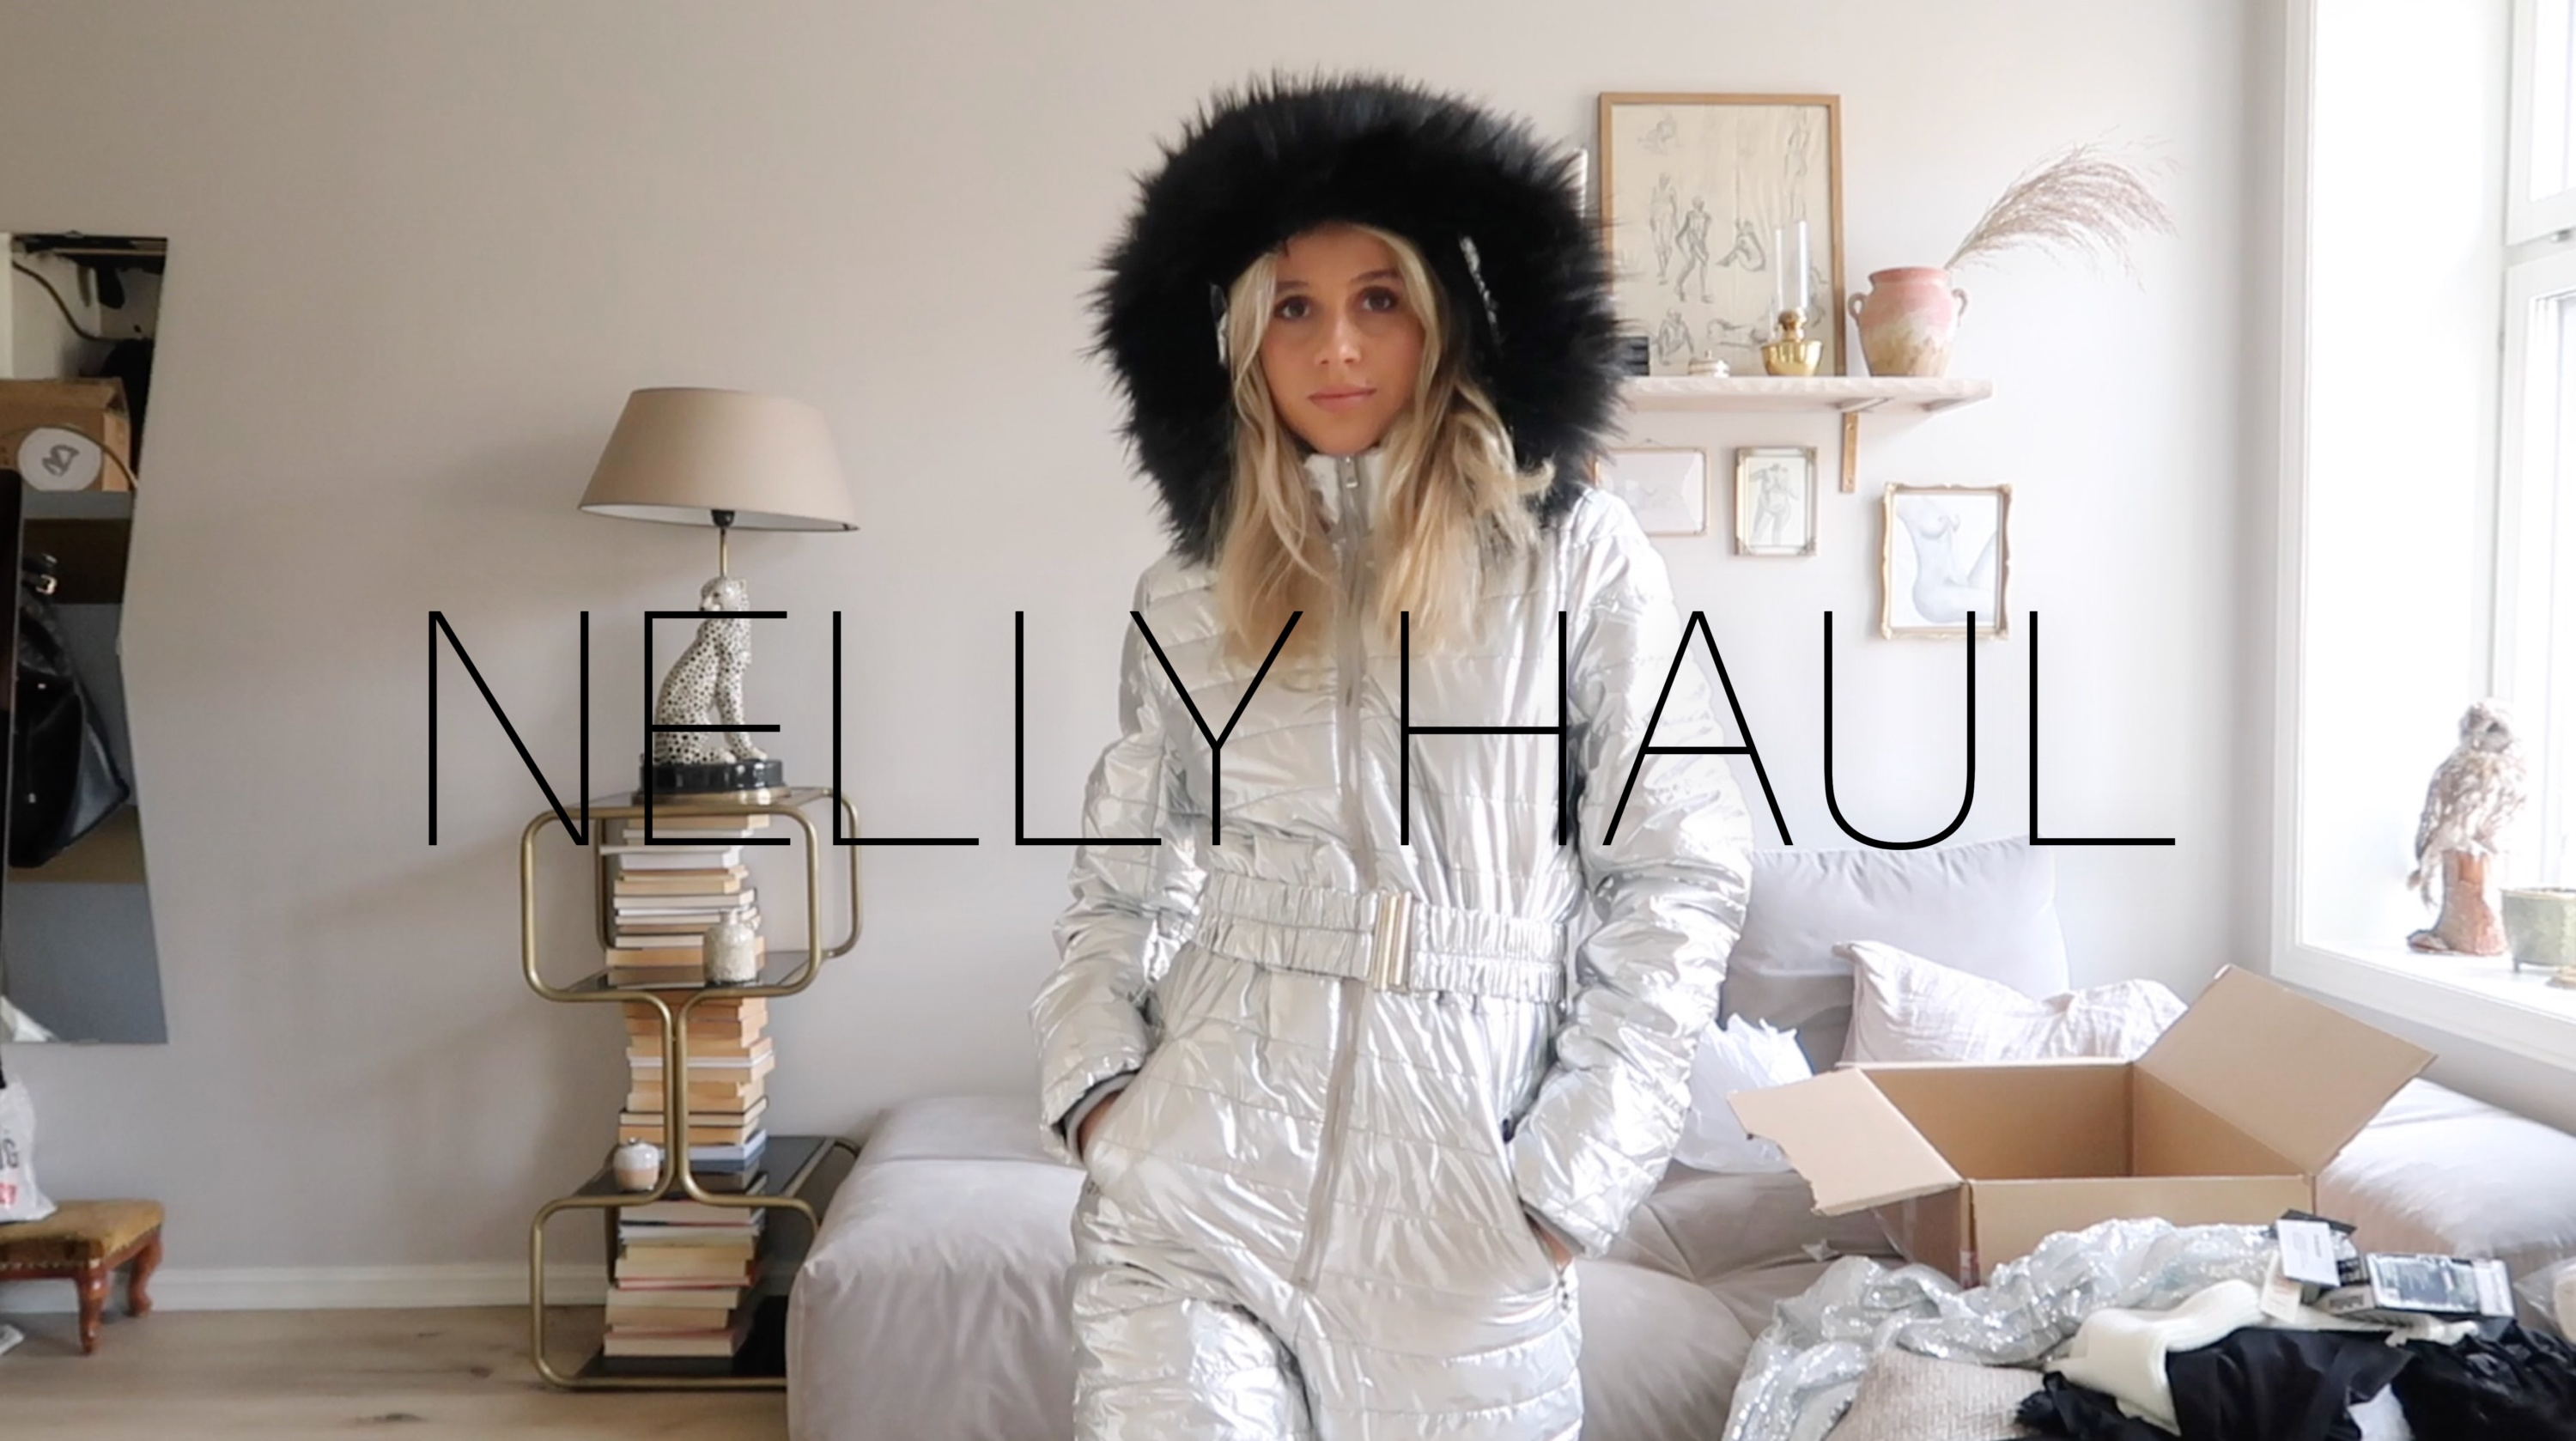 NELLY HAUL (VIDEO)